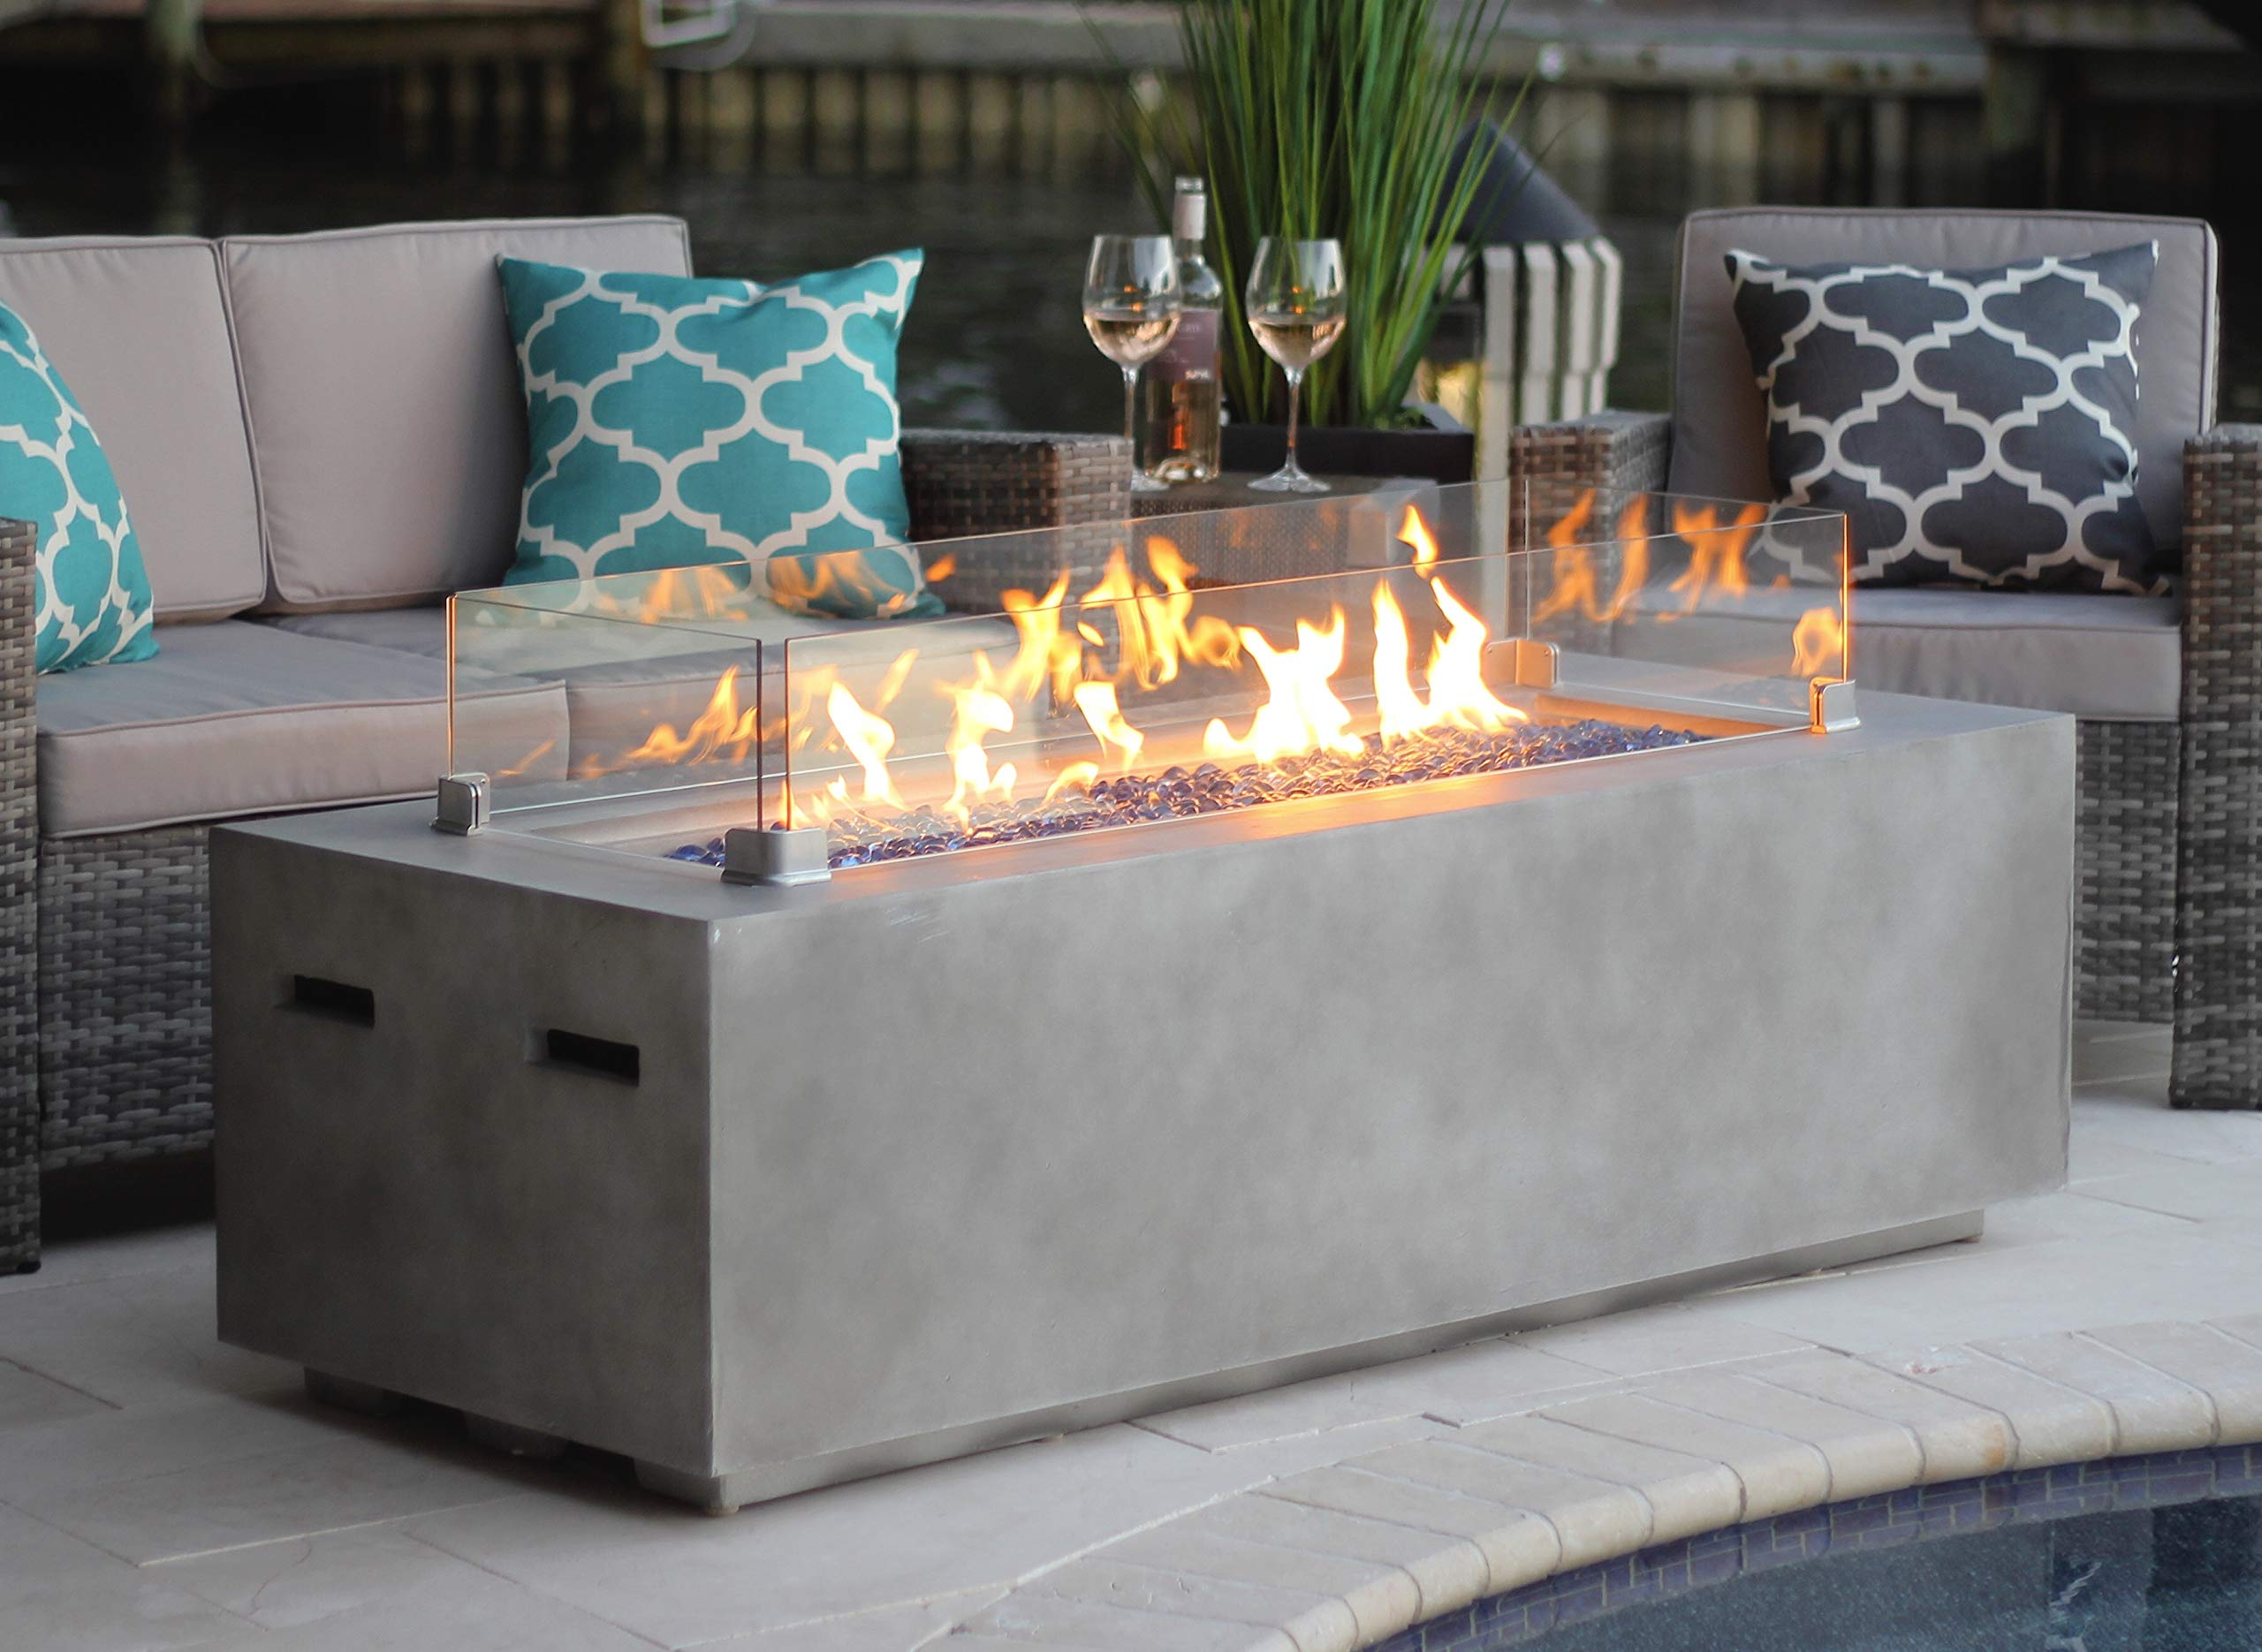 AKOYA Outdoor Essentials 60'' Rectangular Modern Concrete Fire Pit Table w/Glass Guard and Crystals in Gray (Cobalt Blue) by AKOYA Outdoor Essentials